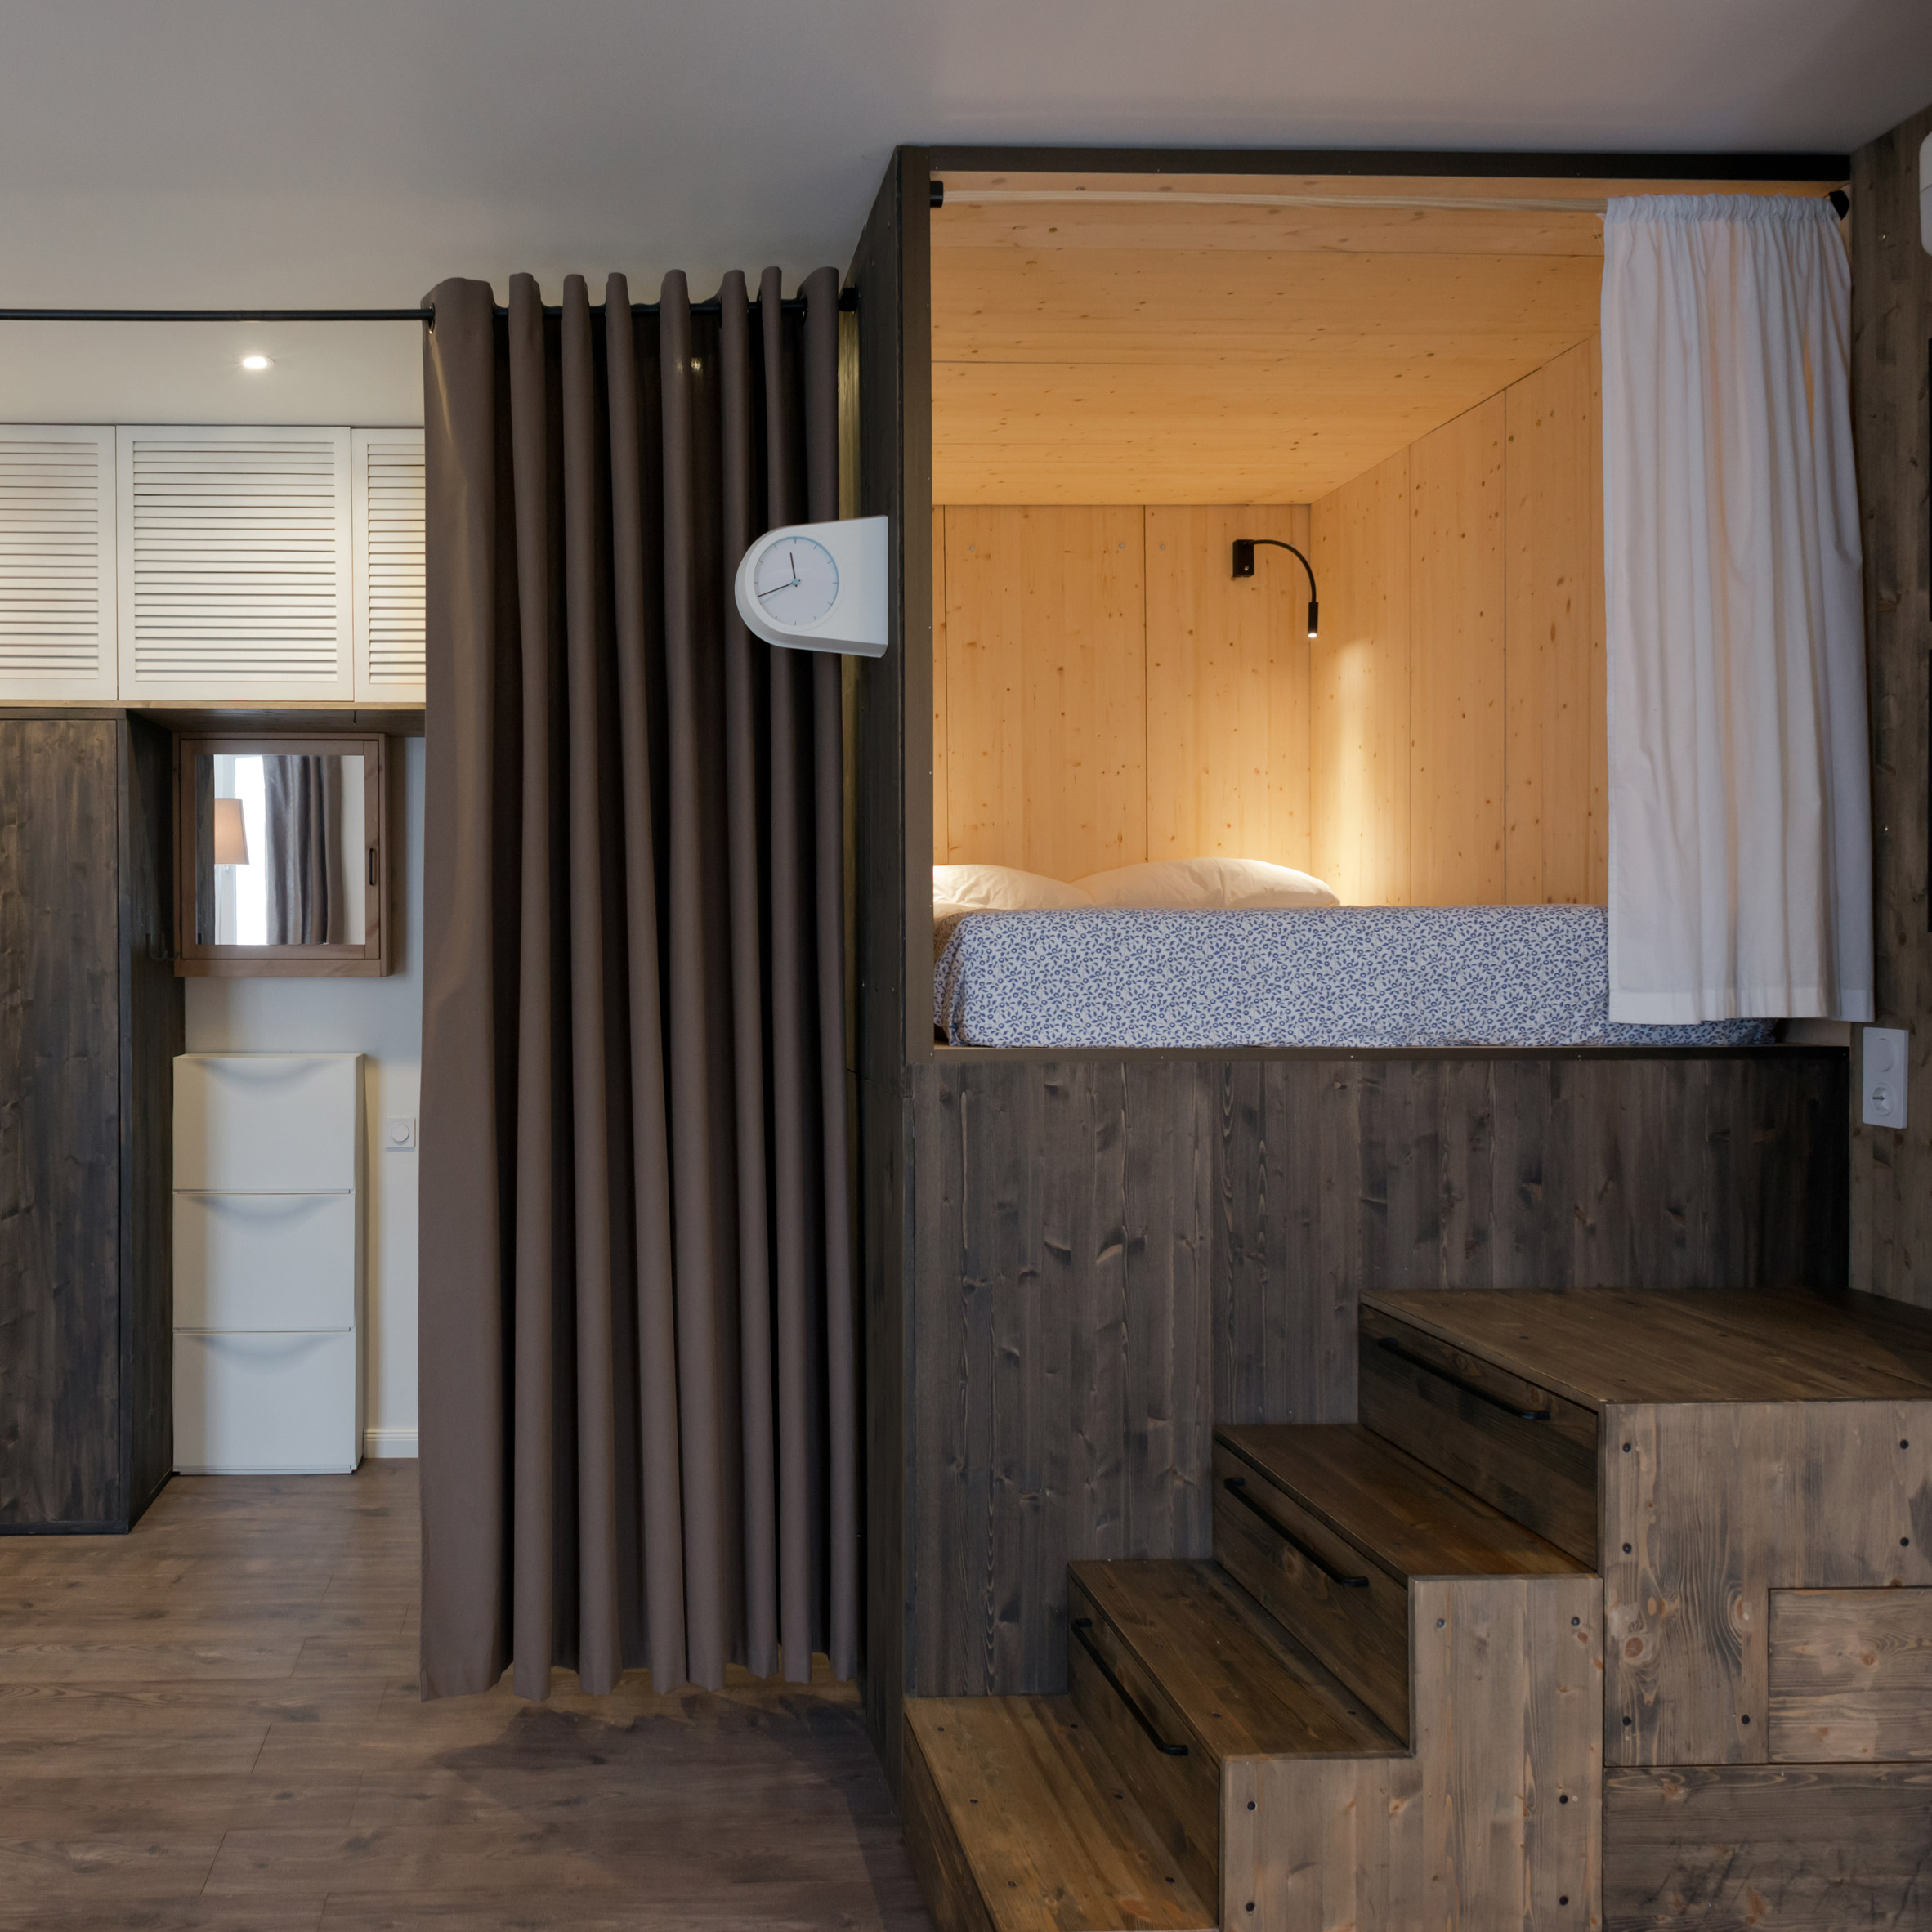 micro-apartment-in-moscow-by-studio-bazi-_dezeen_2364_sq1